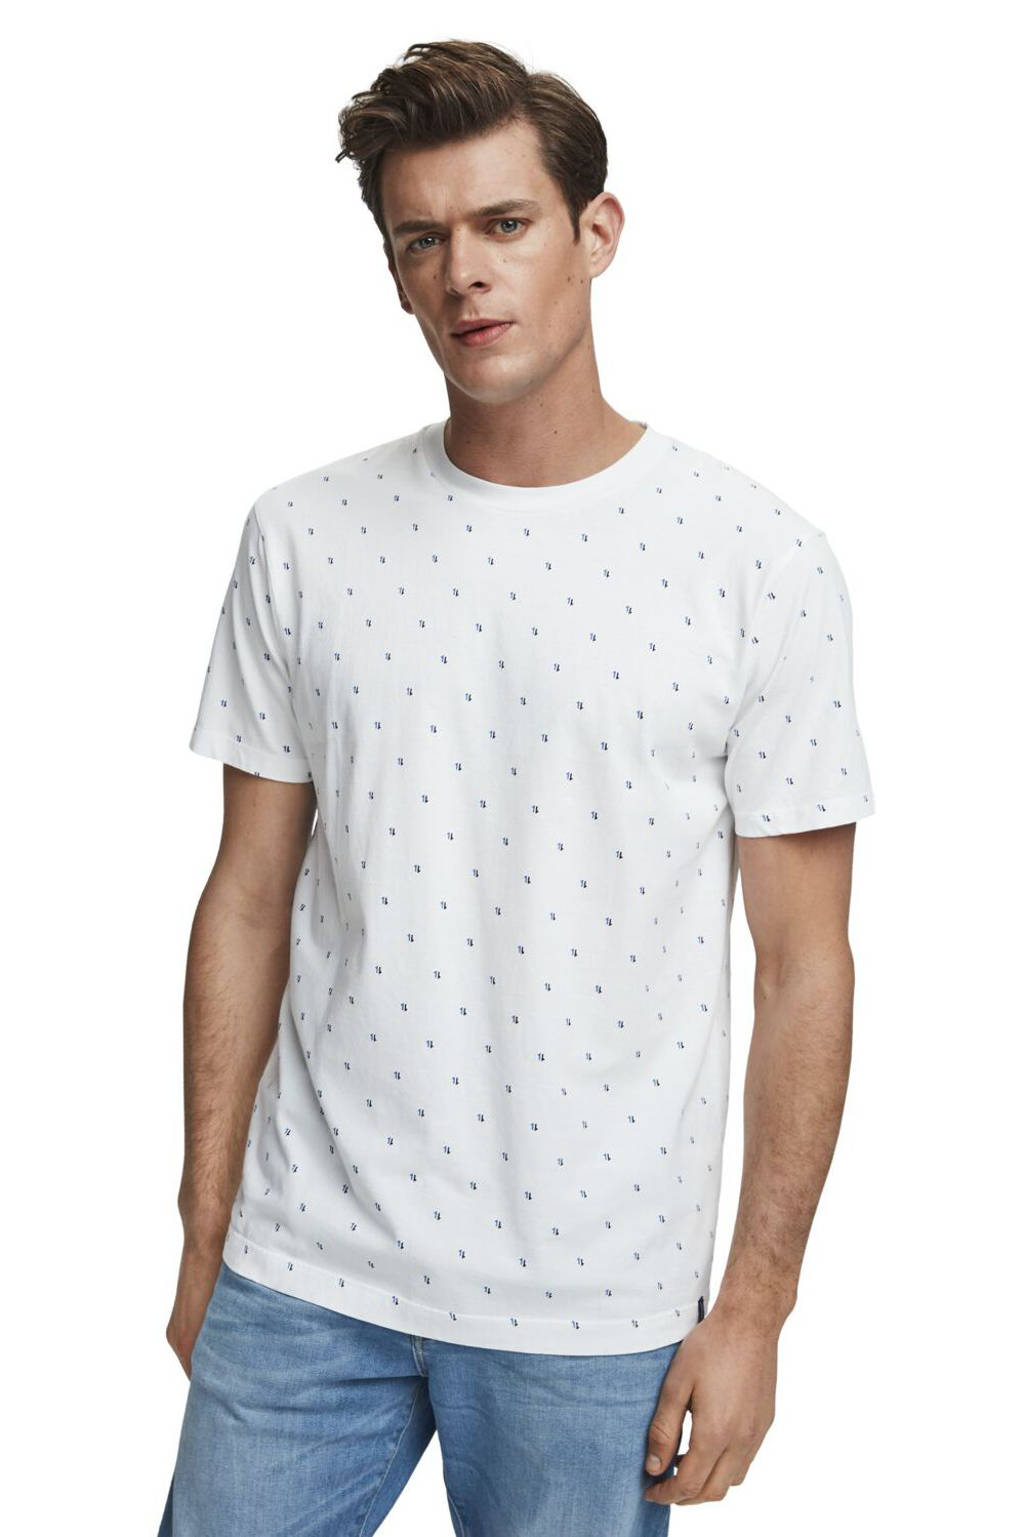 Scotch & Soda T-shirt met all over print wit, Wit